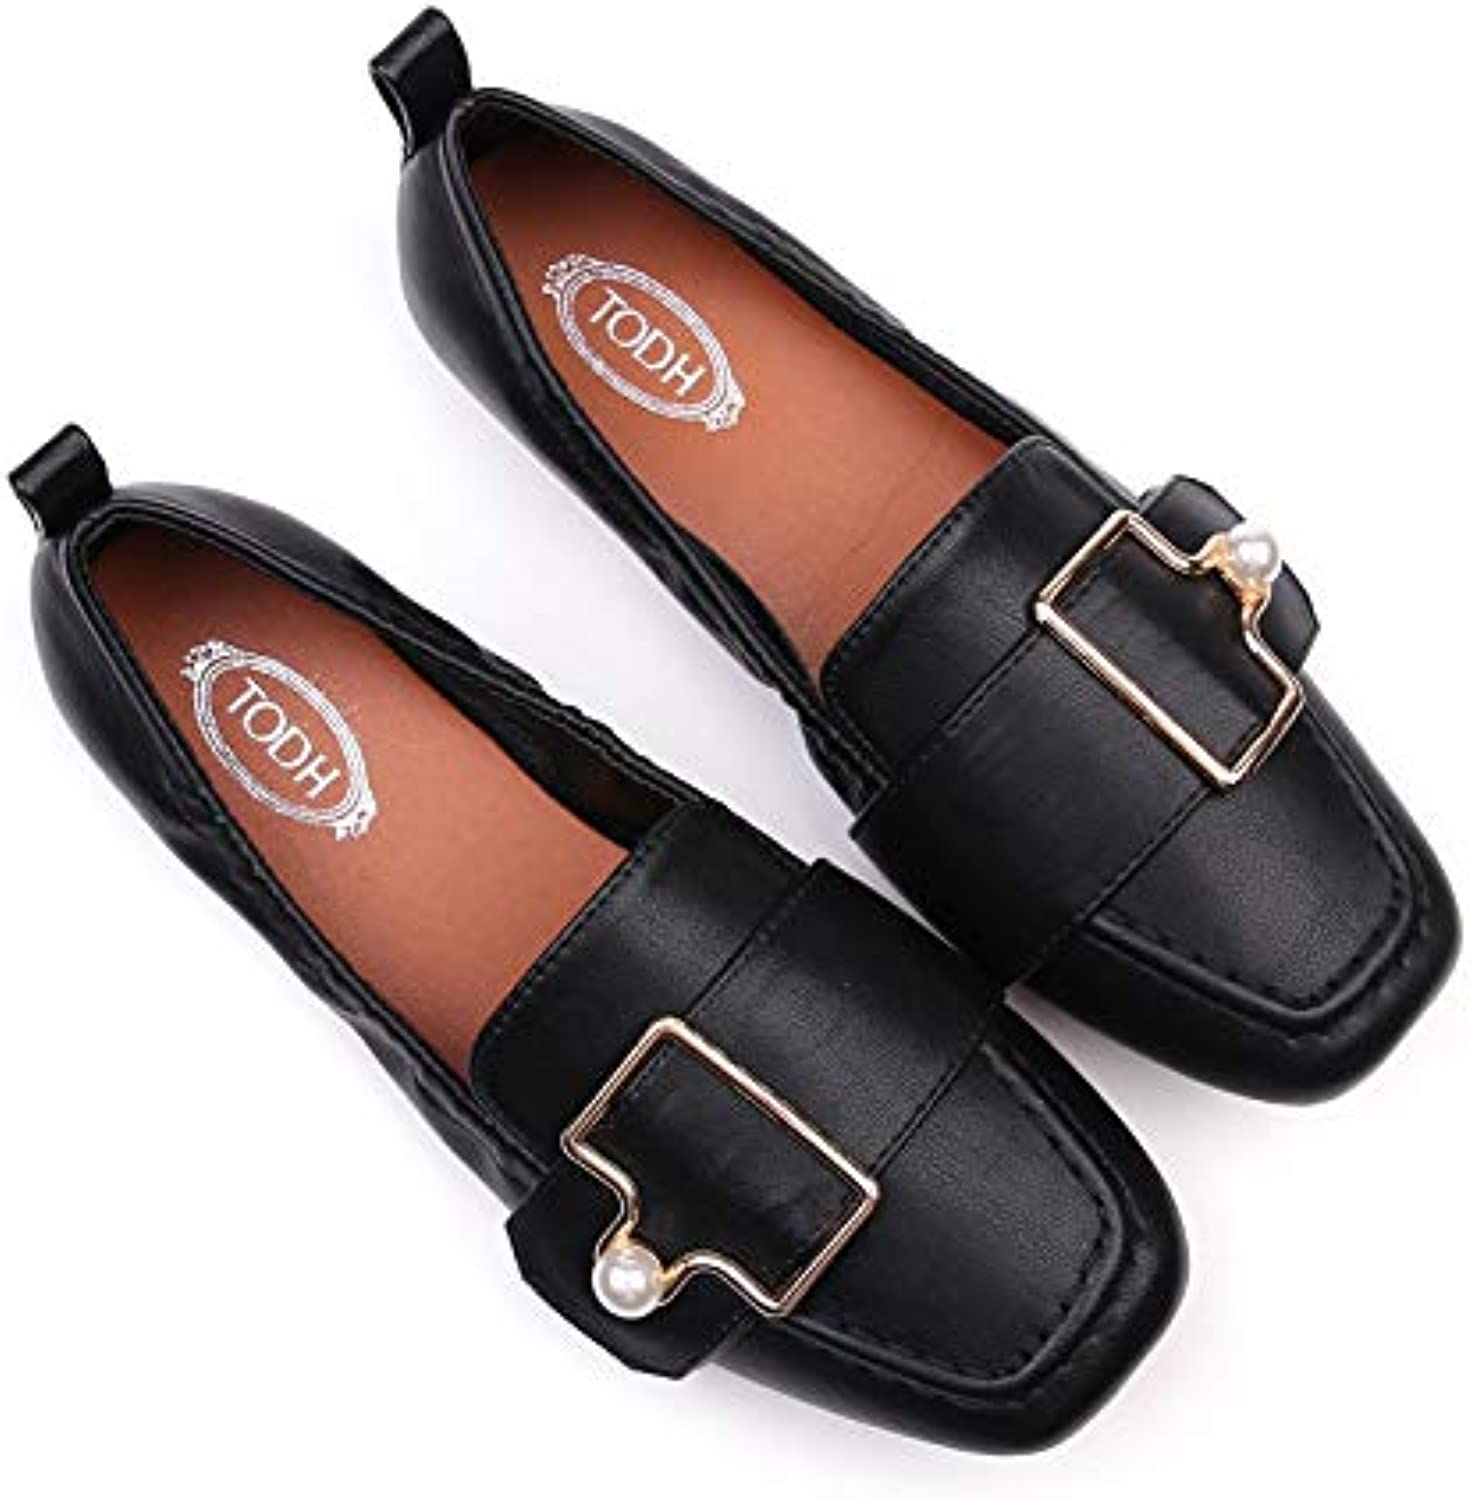 Meimeioo Penny Loafers Women's Slip On Flats Casual shoes Comfort Driving Leather Walk(Black-Lable 41 9.5 B(M) US Women)